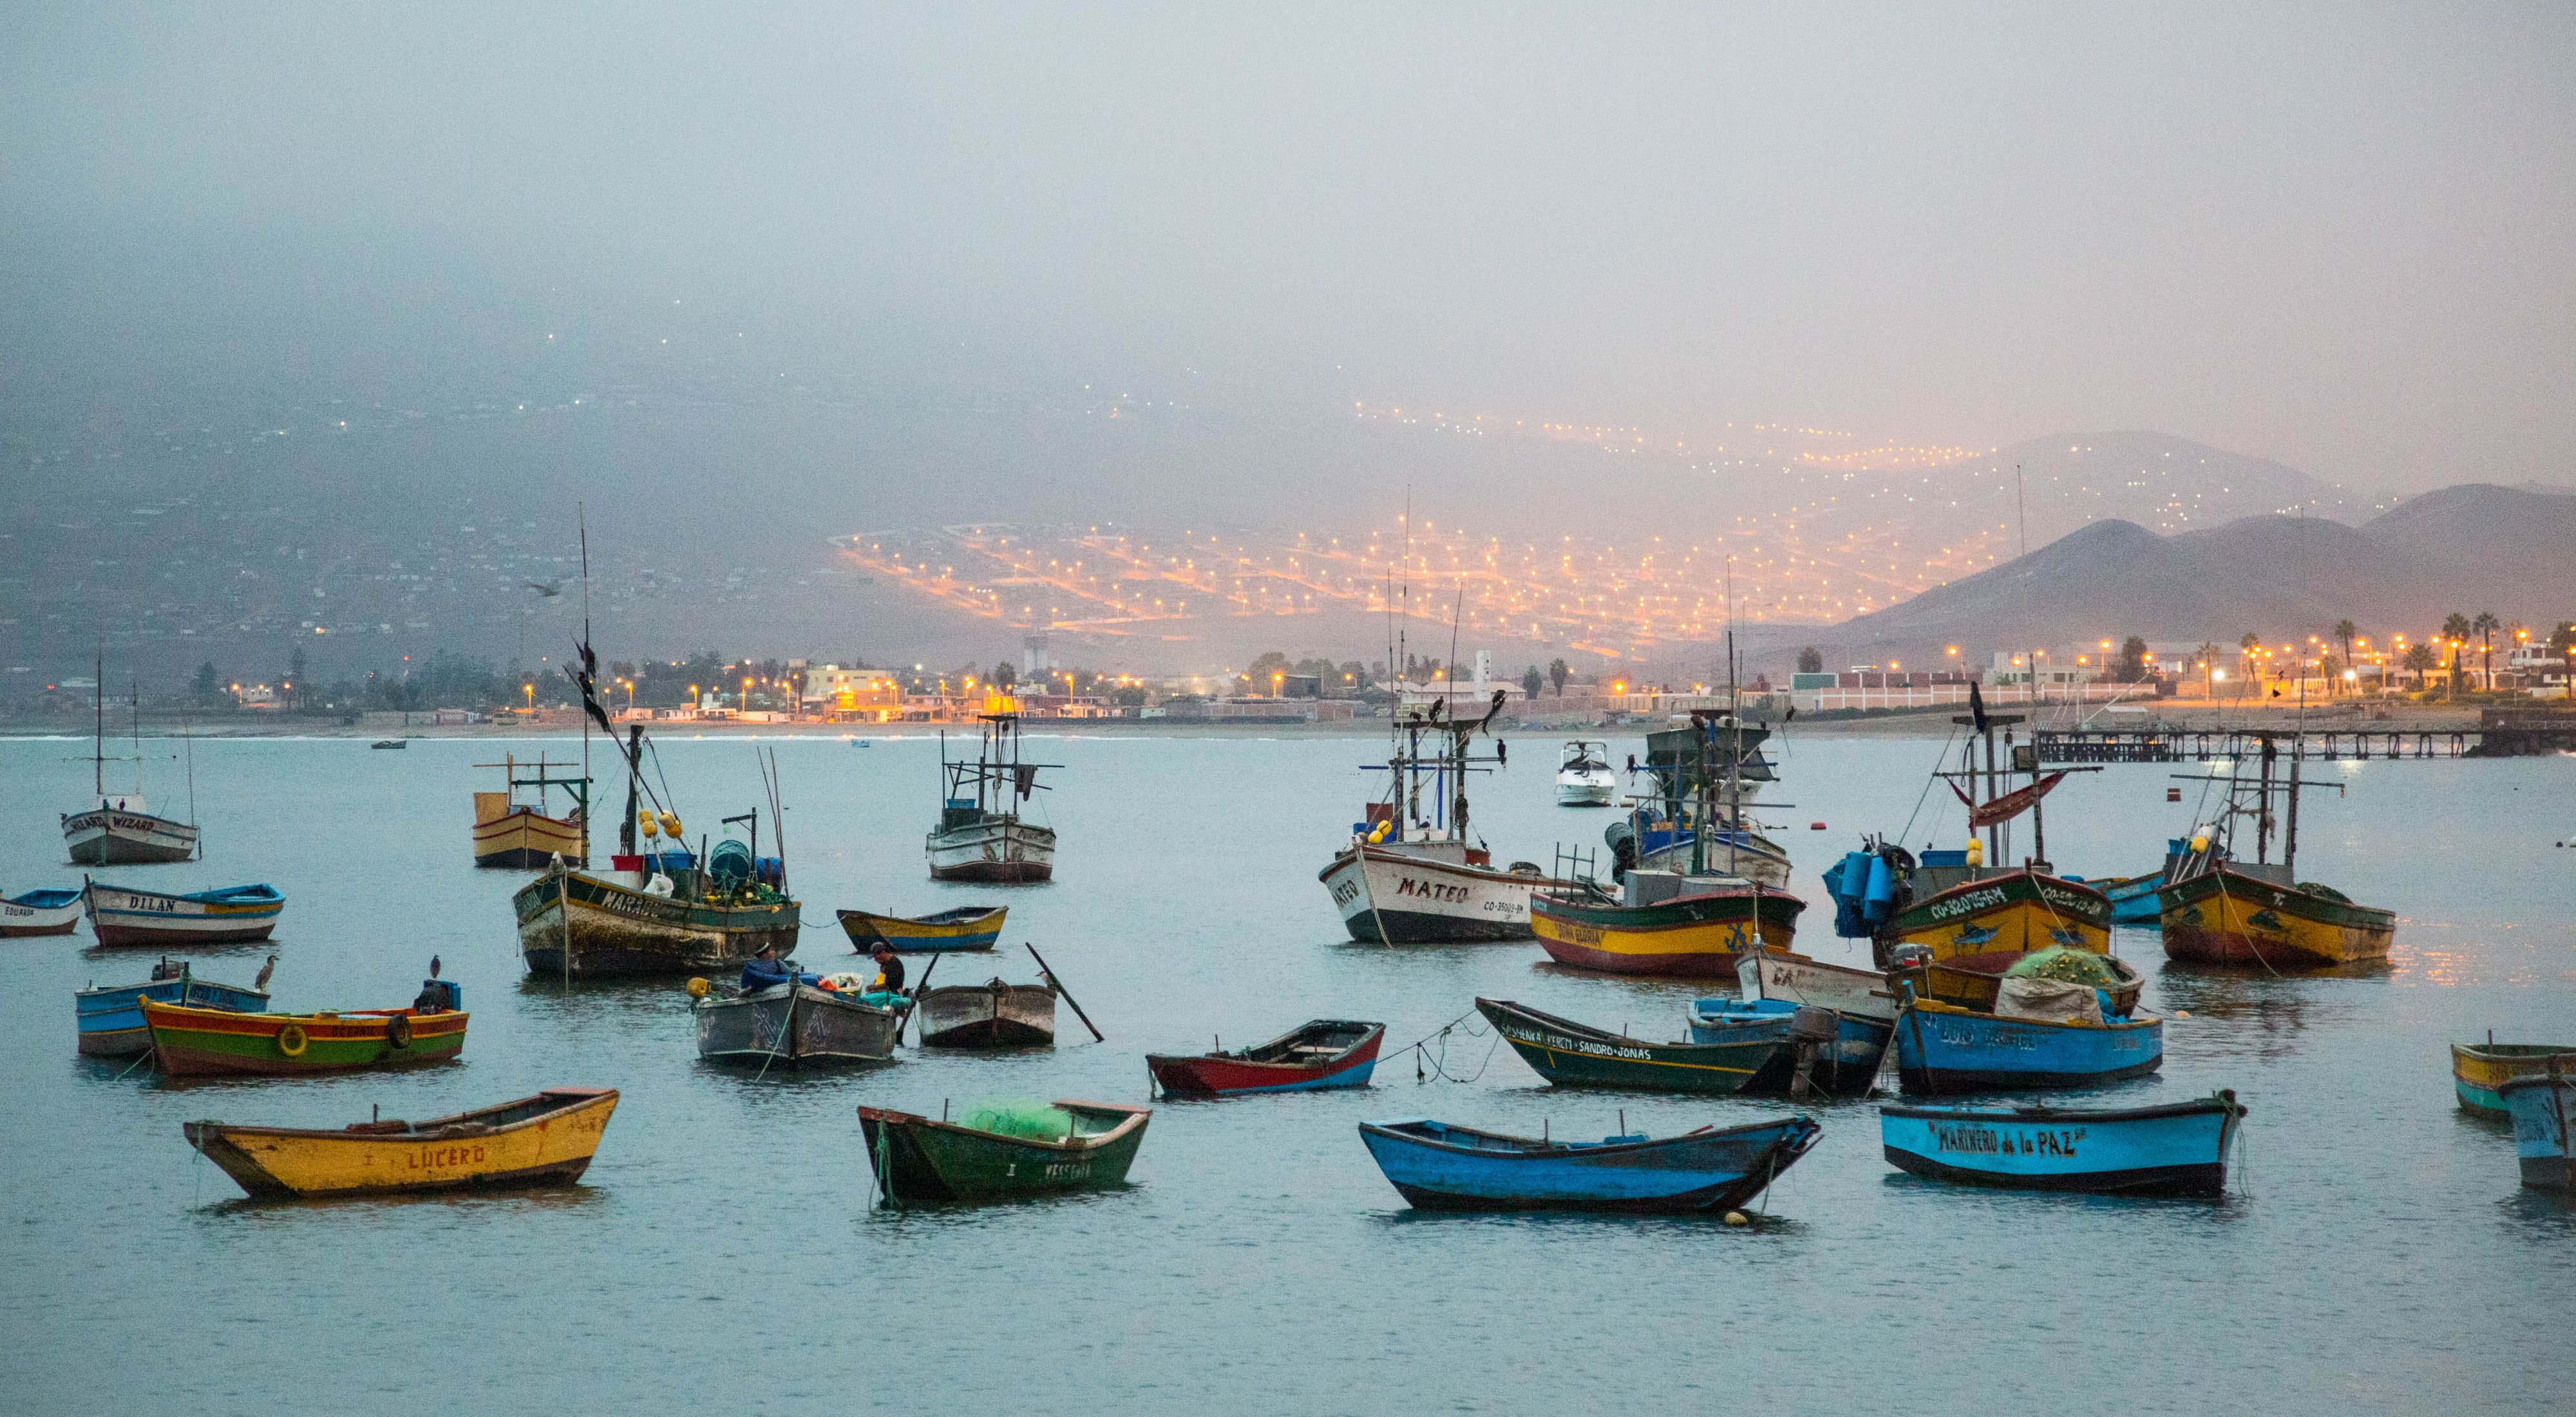 Fisherman in Ancon, Peru, where TNC's sustainable fisheries management tool, FishPath, was piloted.